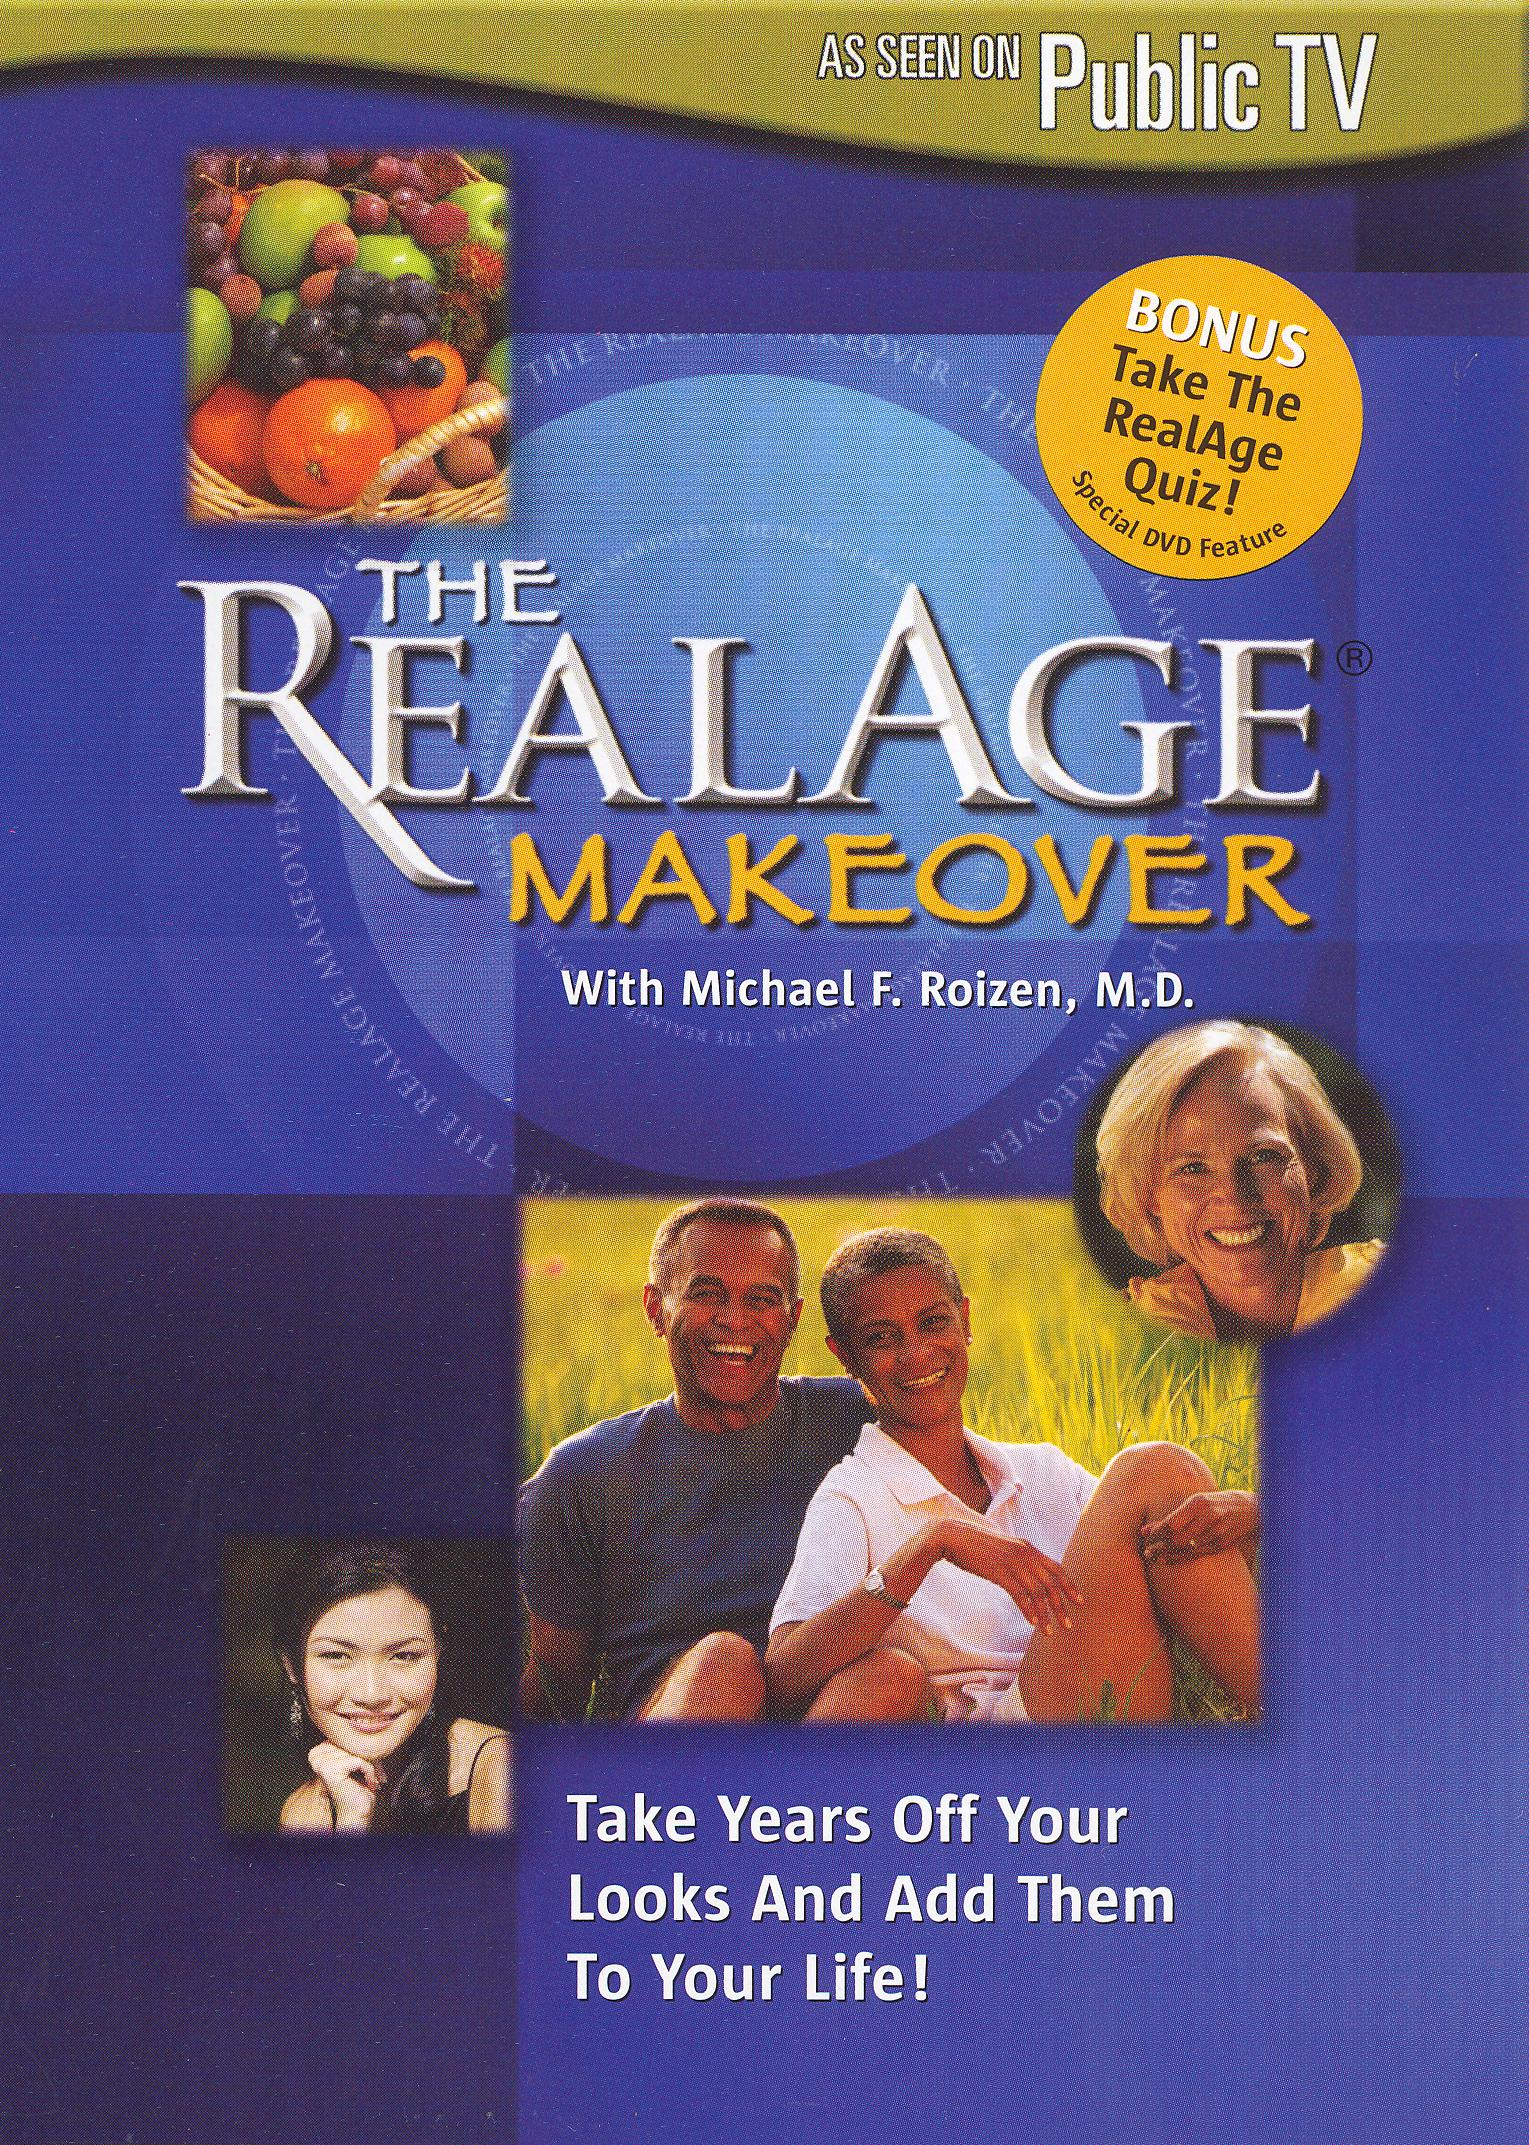 The Real Age Makeover: With Michael F. Roizen, MD